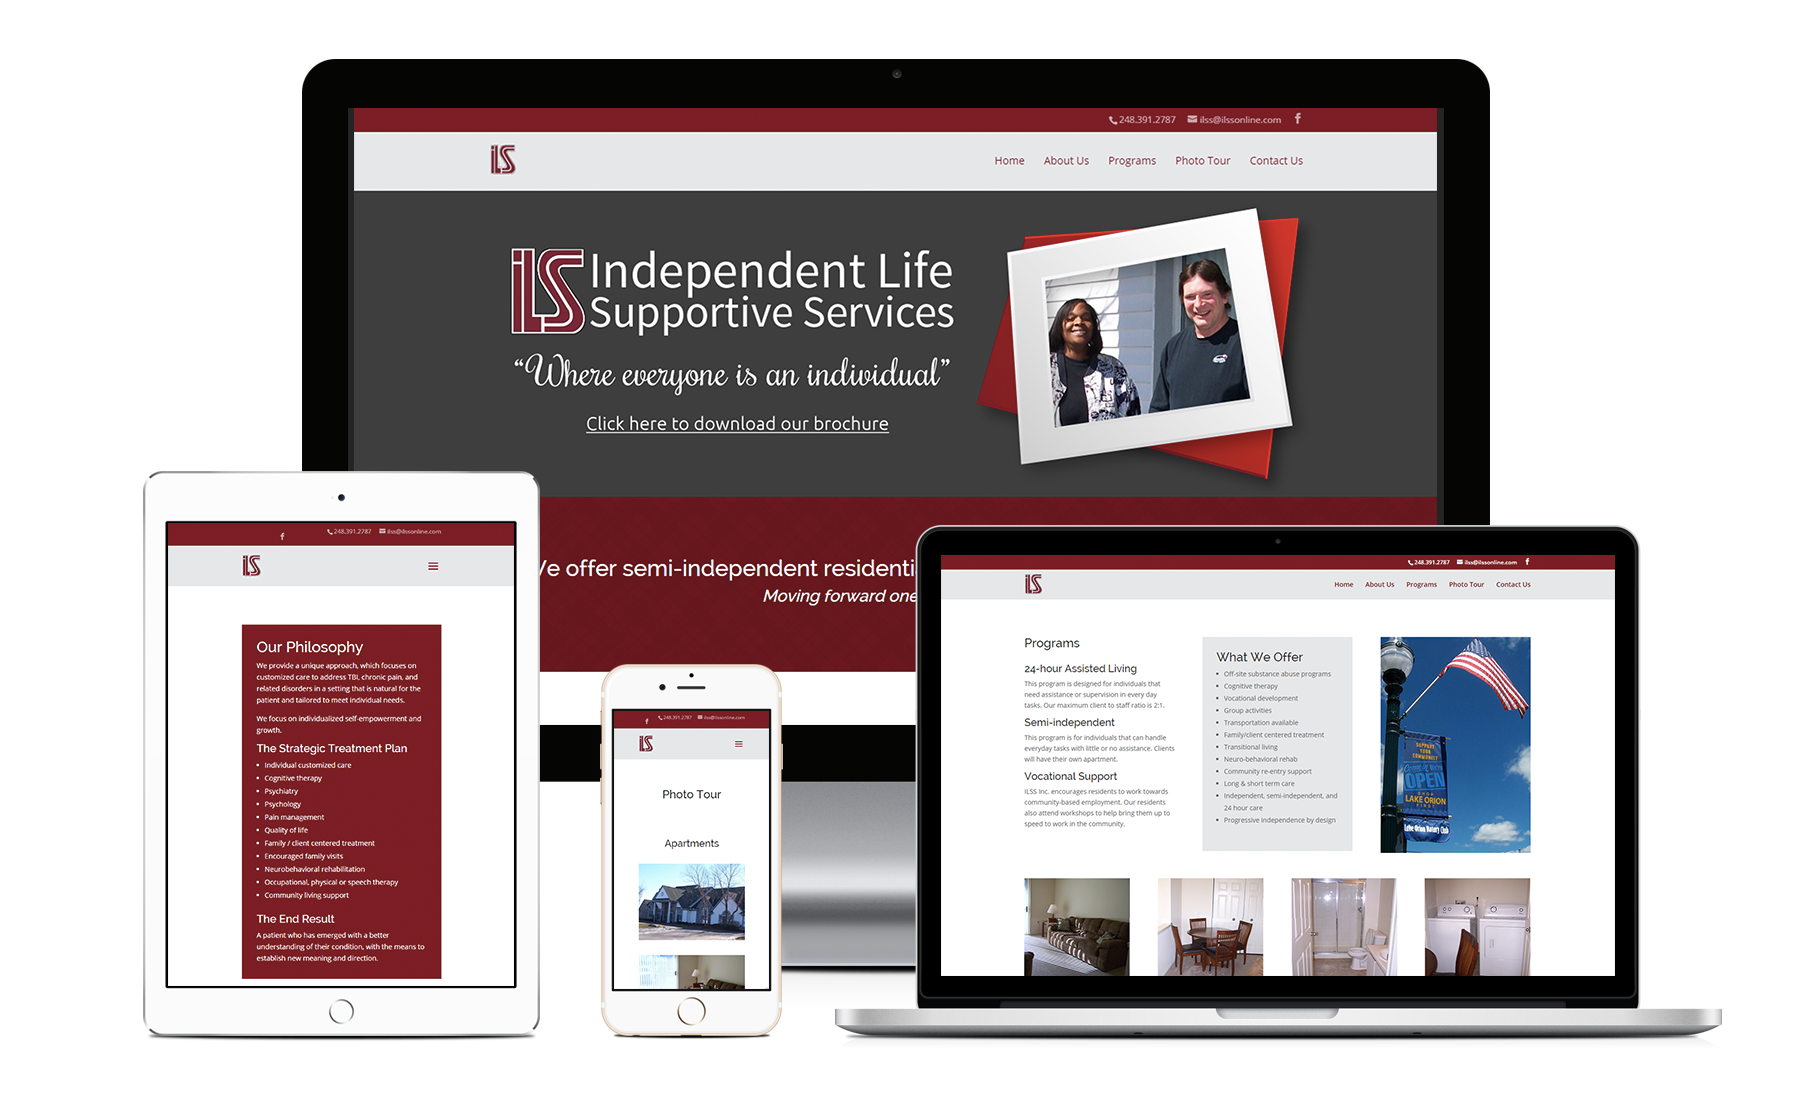 Independent Life Supportive Services - Zoda Design